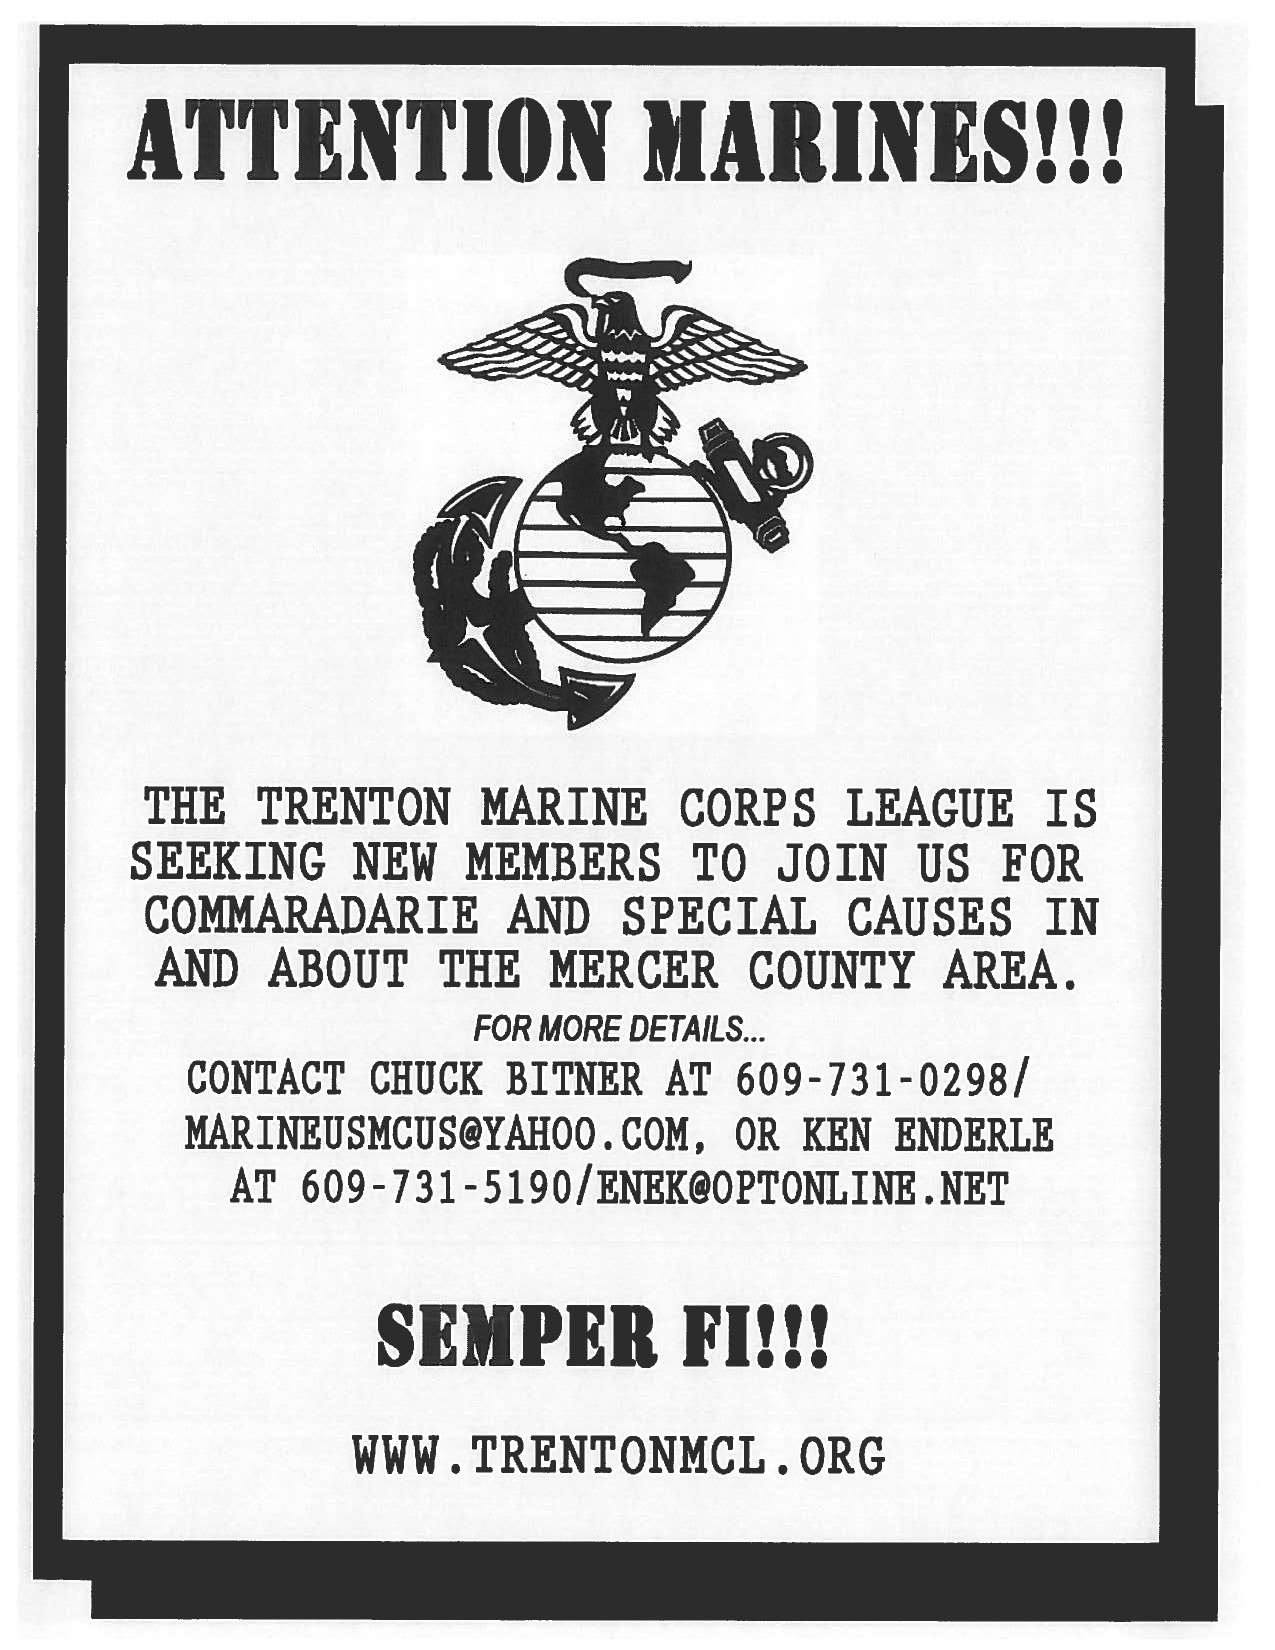 Trenton_Marine_Corp_League_Recruitment_Post_Ken_Enderle_copy.jpg